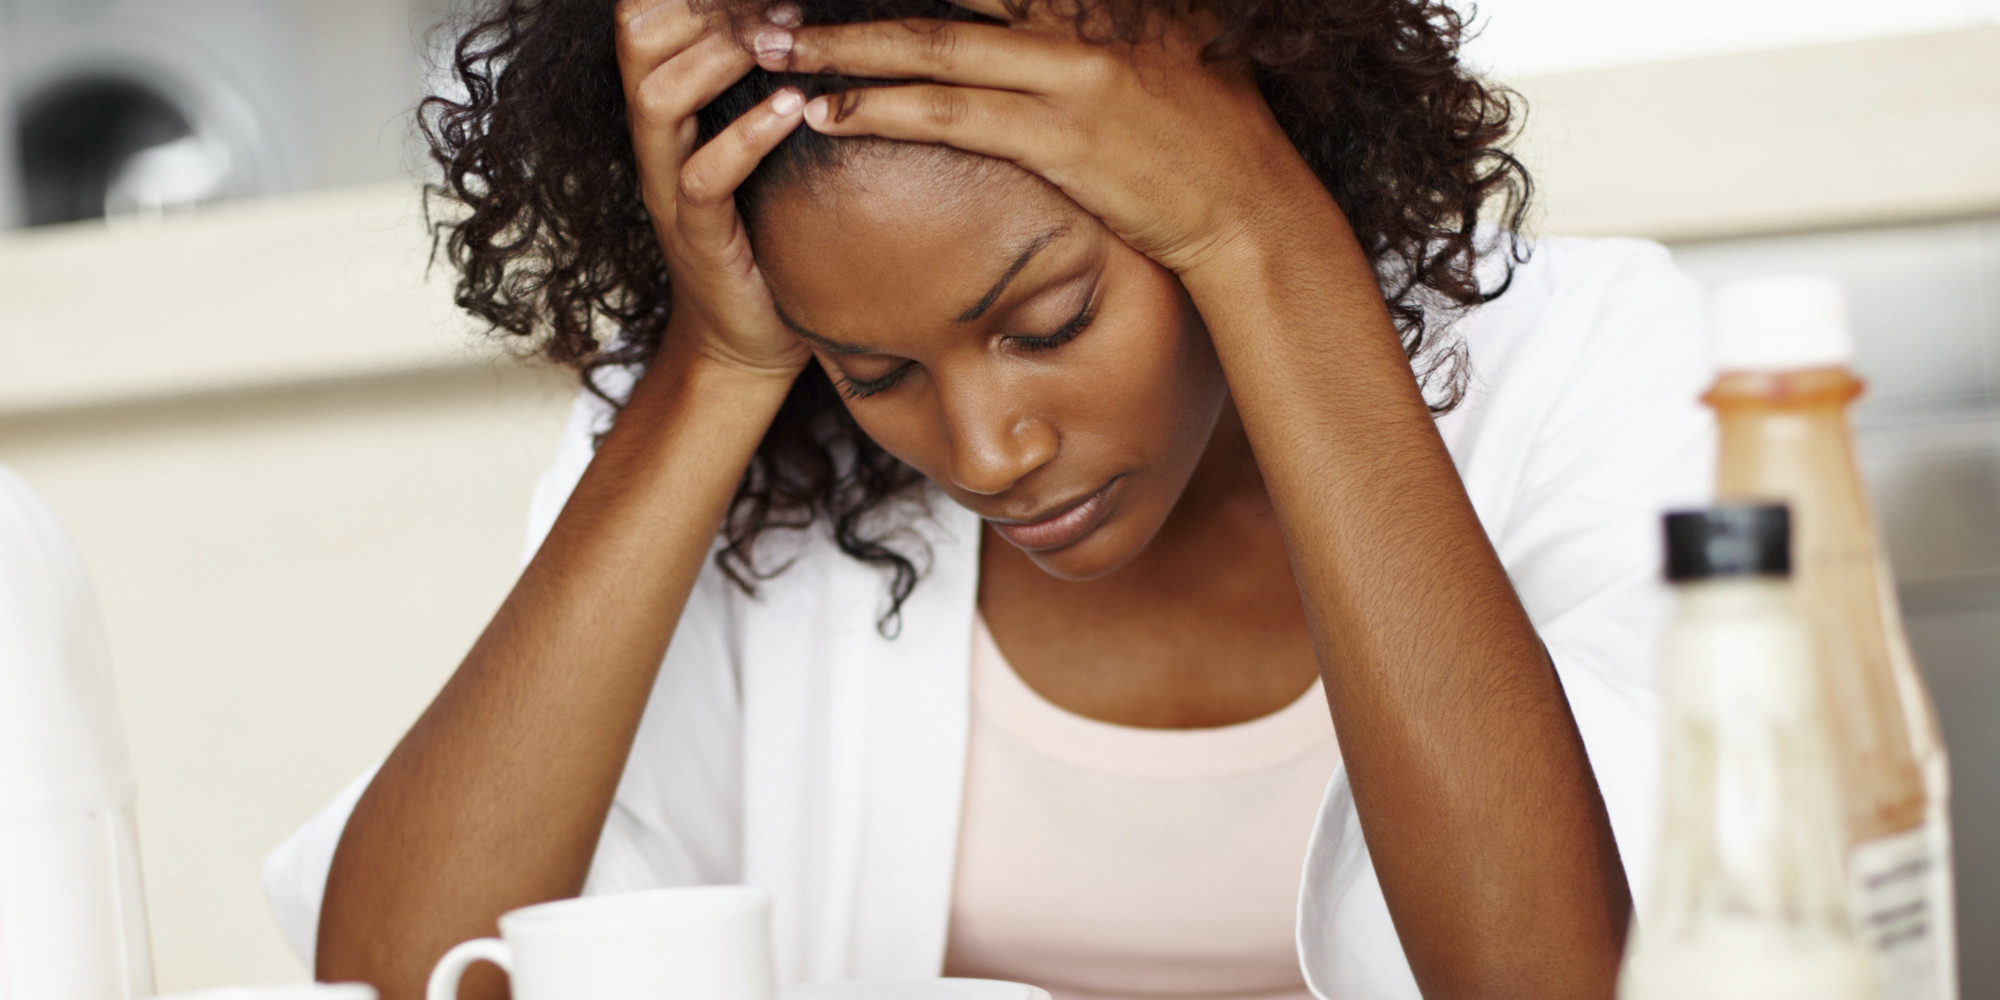 woman self doubt article2